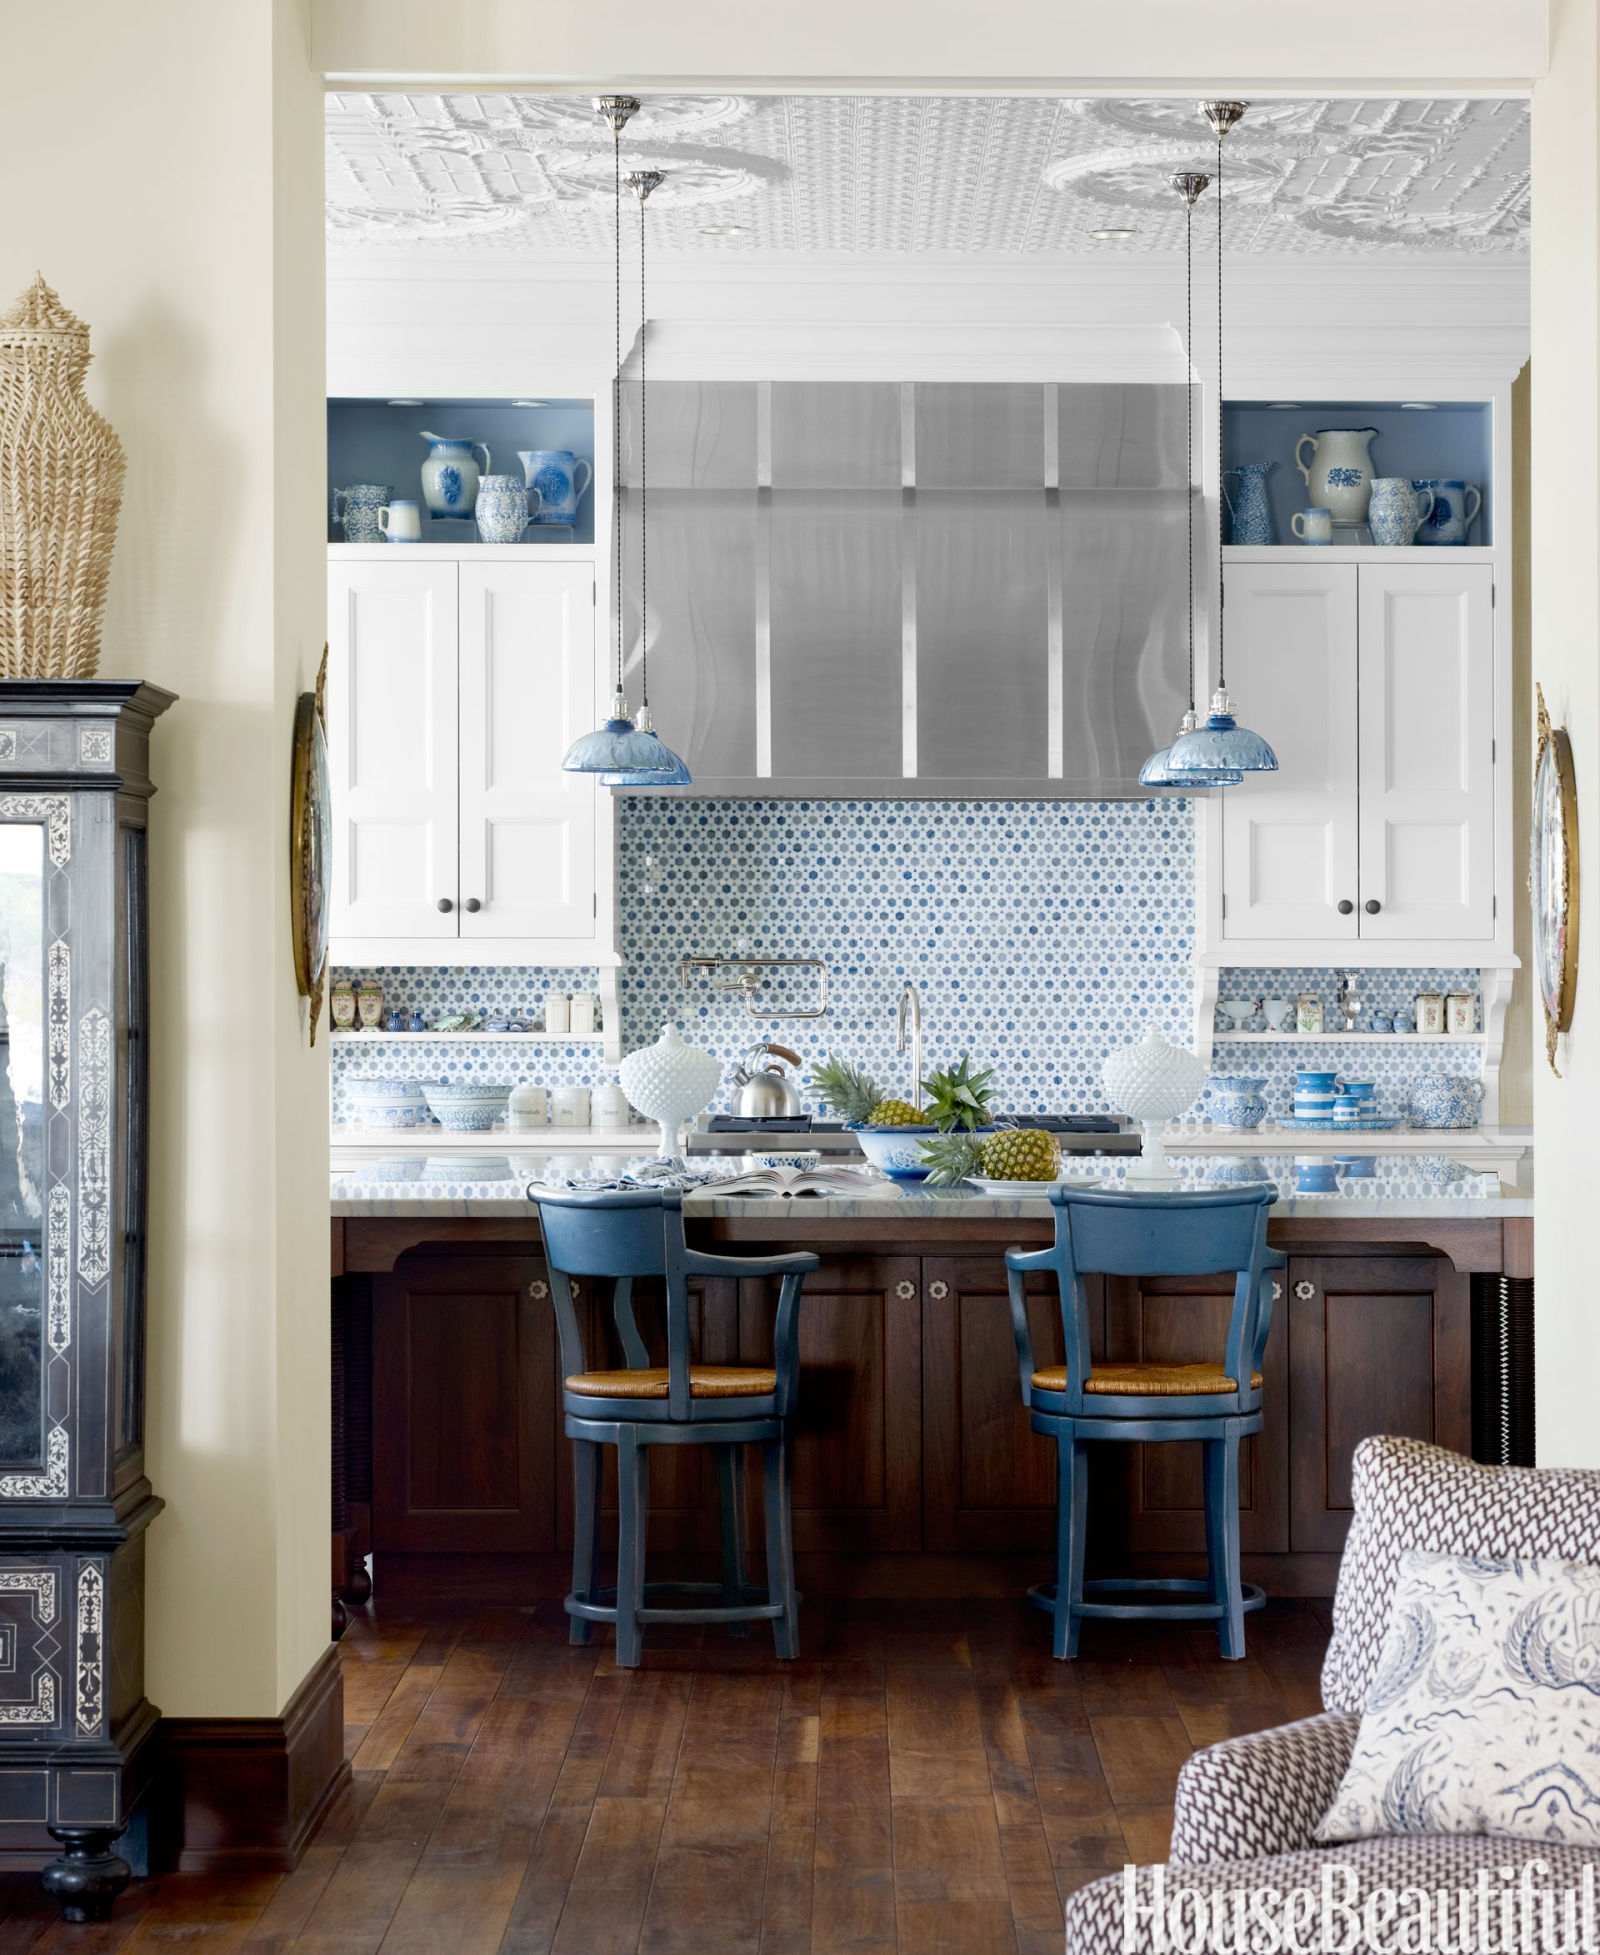 Excellent Common Blue Mercury Glass Pendant Lights With Regard To Blue Exotic Kitchen House Beautiful Pinterest Favorite Pins July (Image 7 of 15)